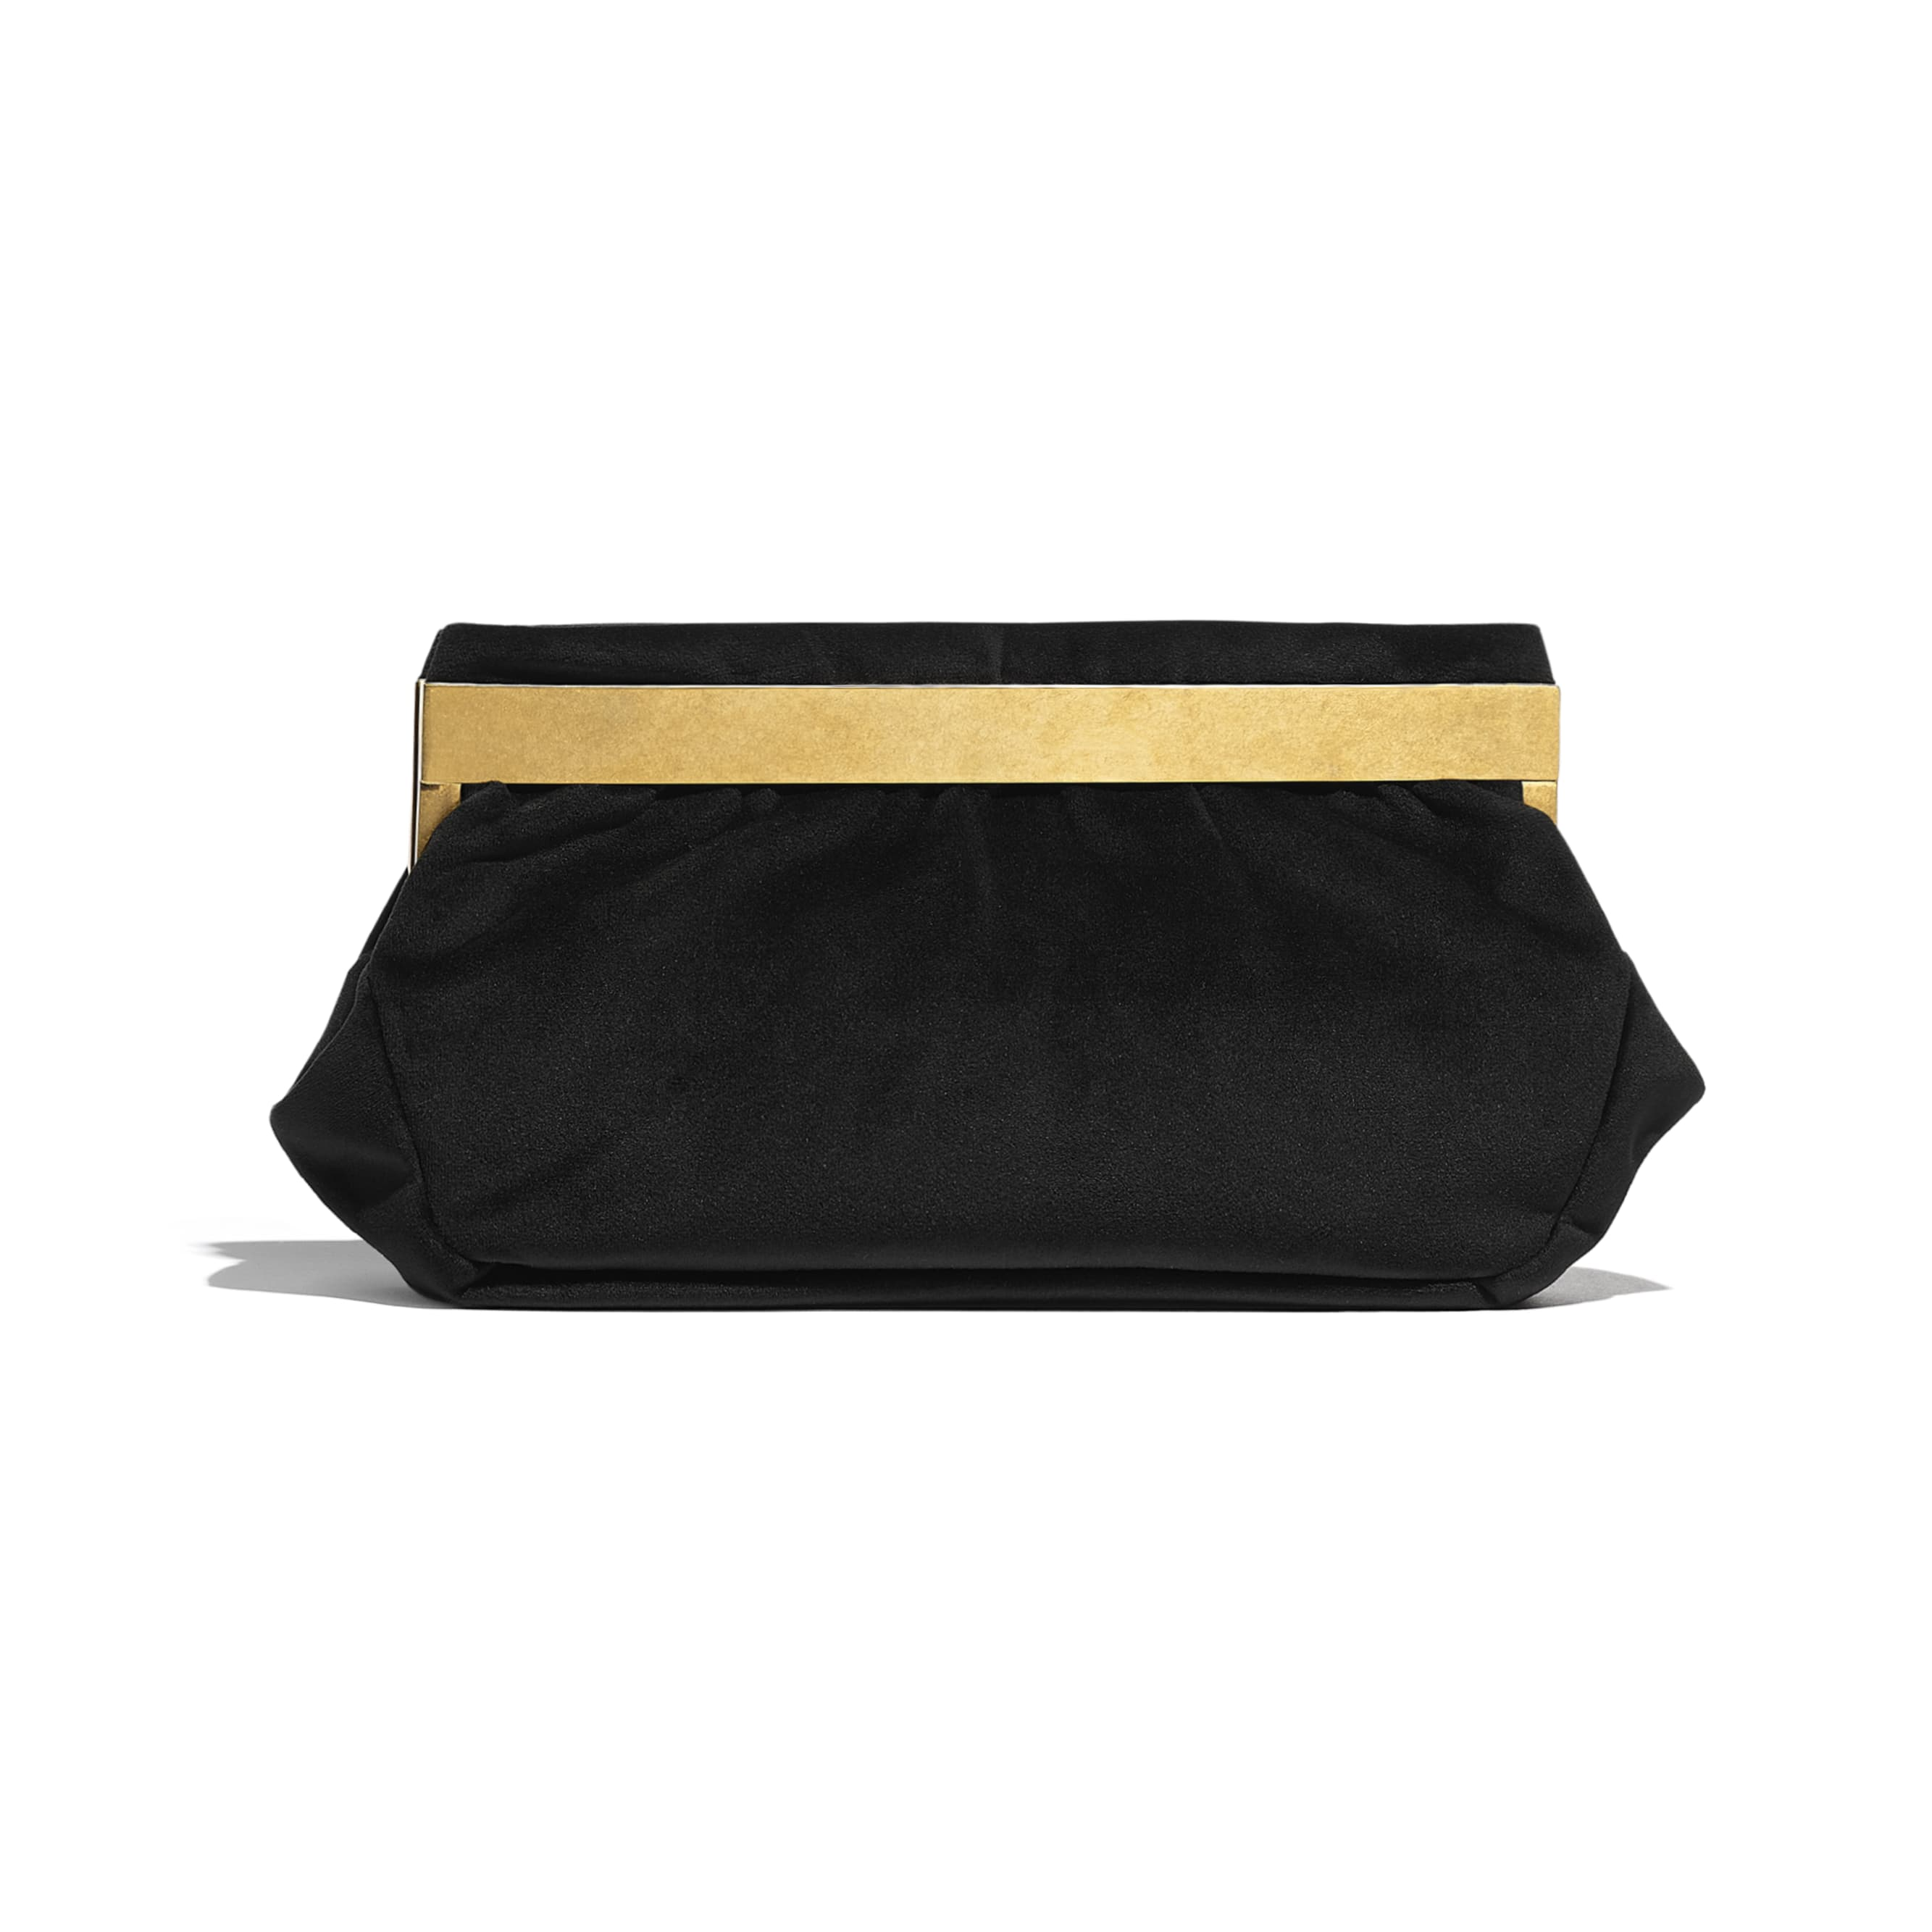 Clutch - Black - Velvet, Brass, Charms & Gold-Tone Metal - CHANEL - Alternative view - see standard sized version